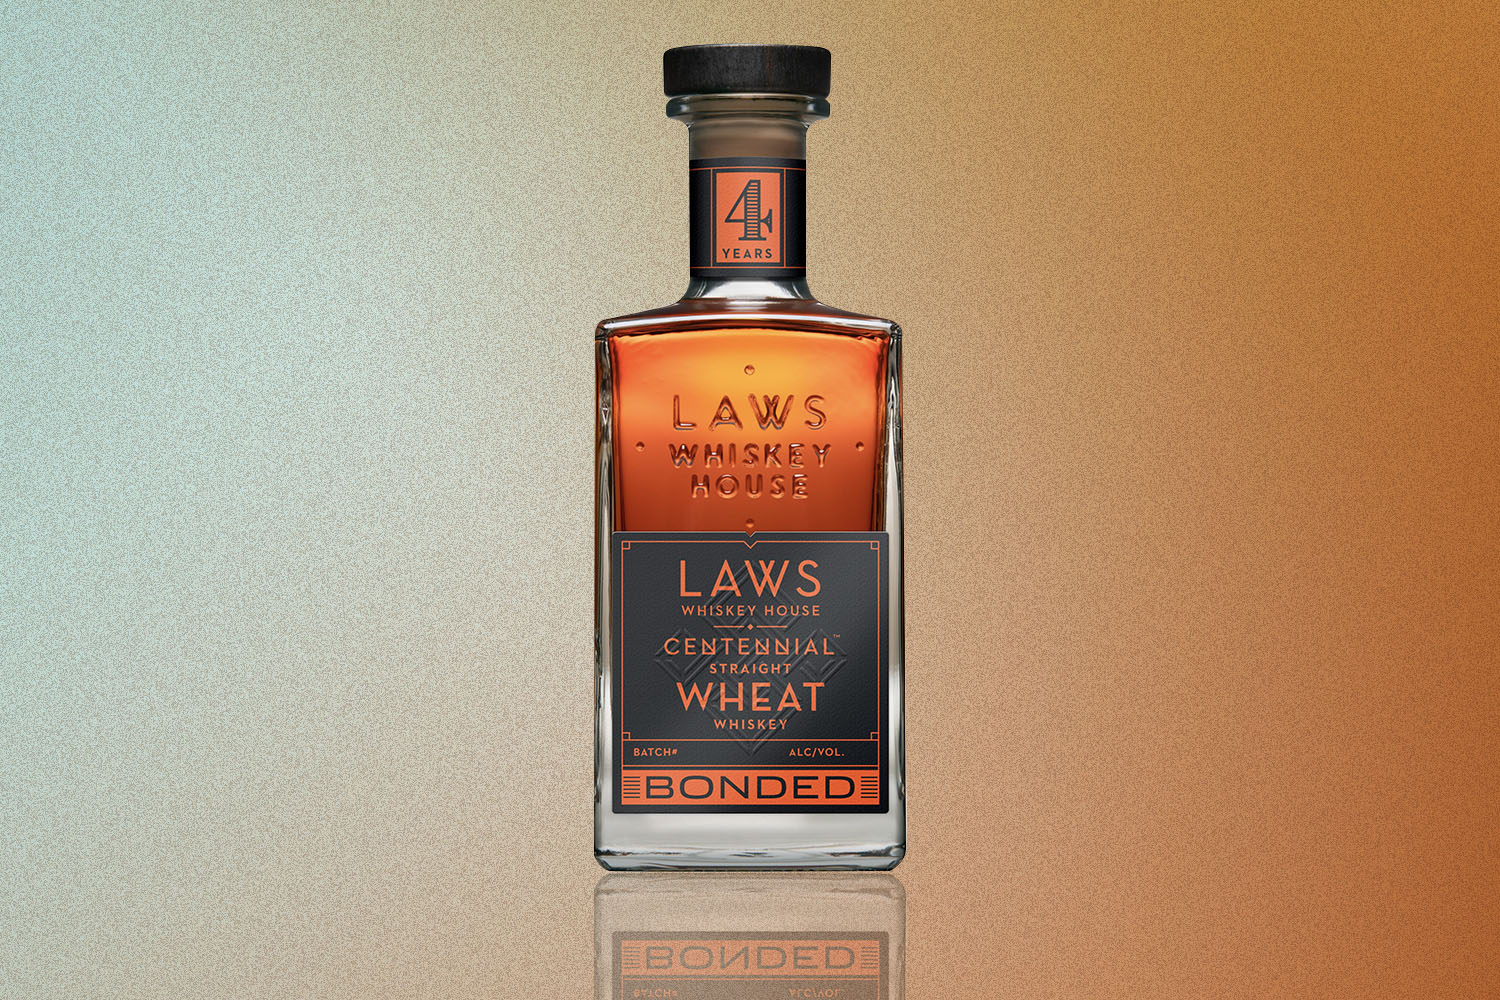 laws bonded wheat whiskey